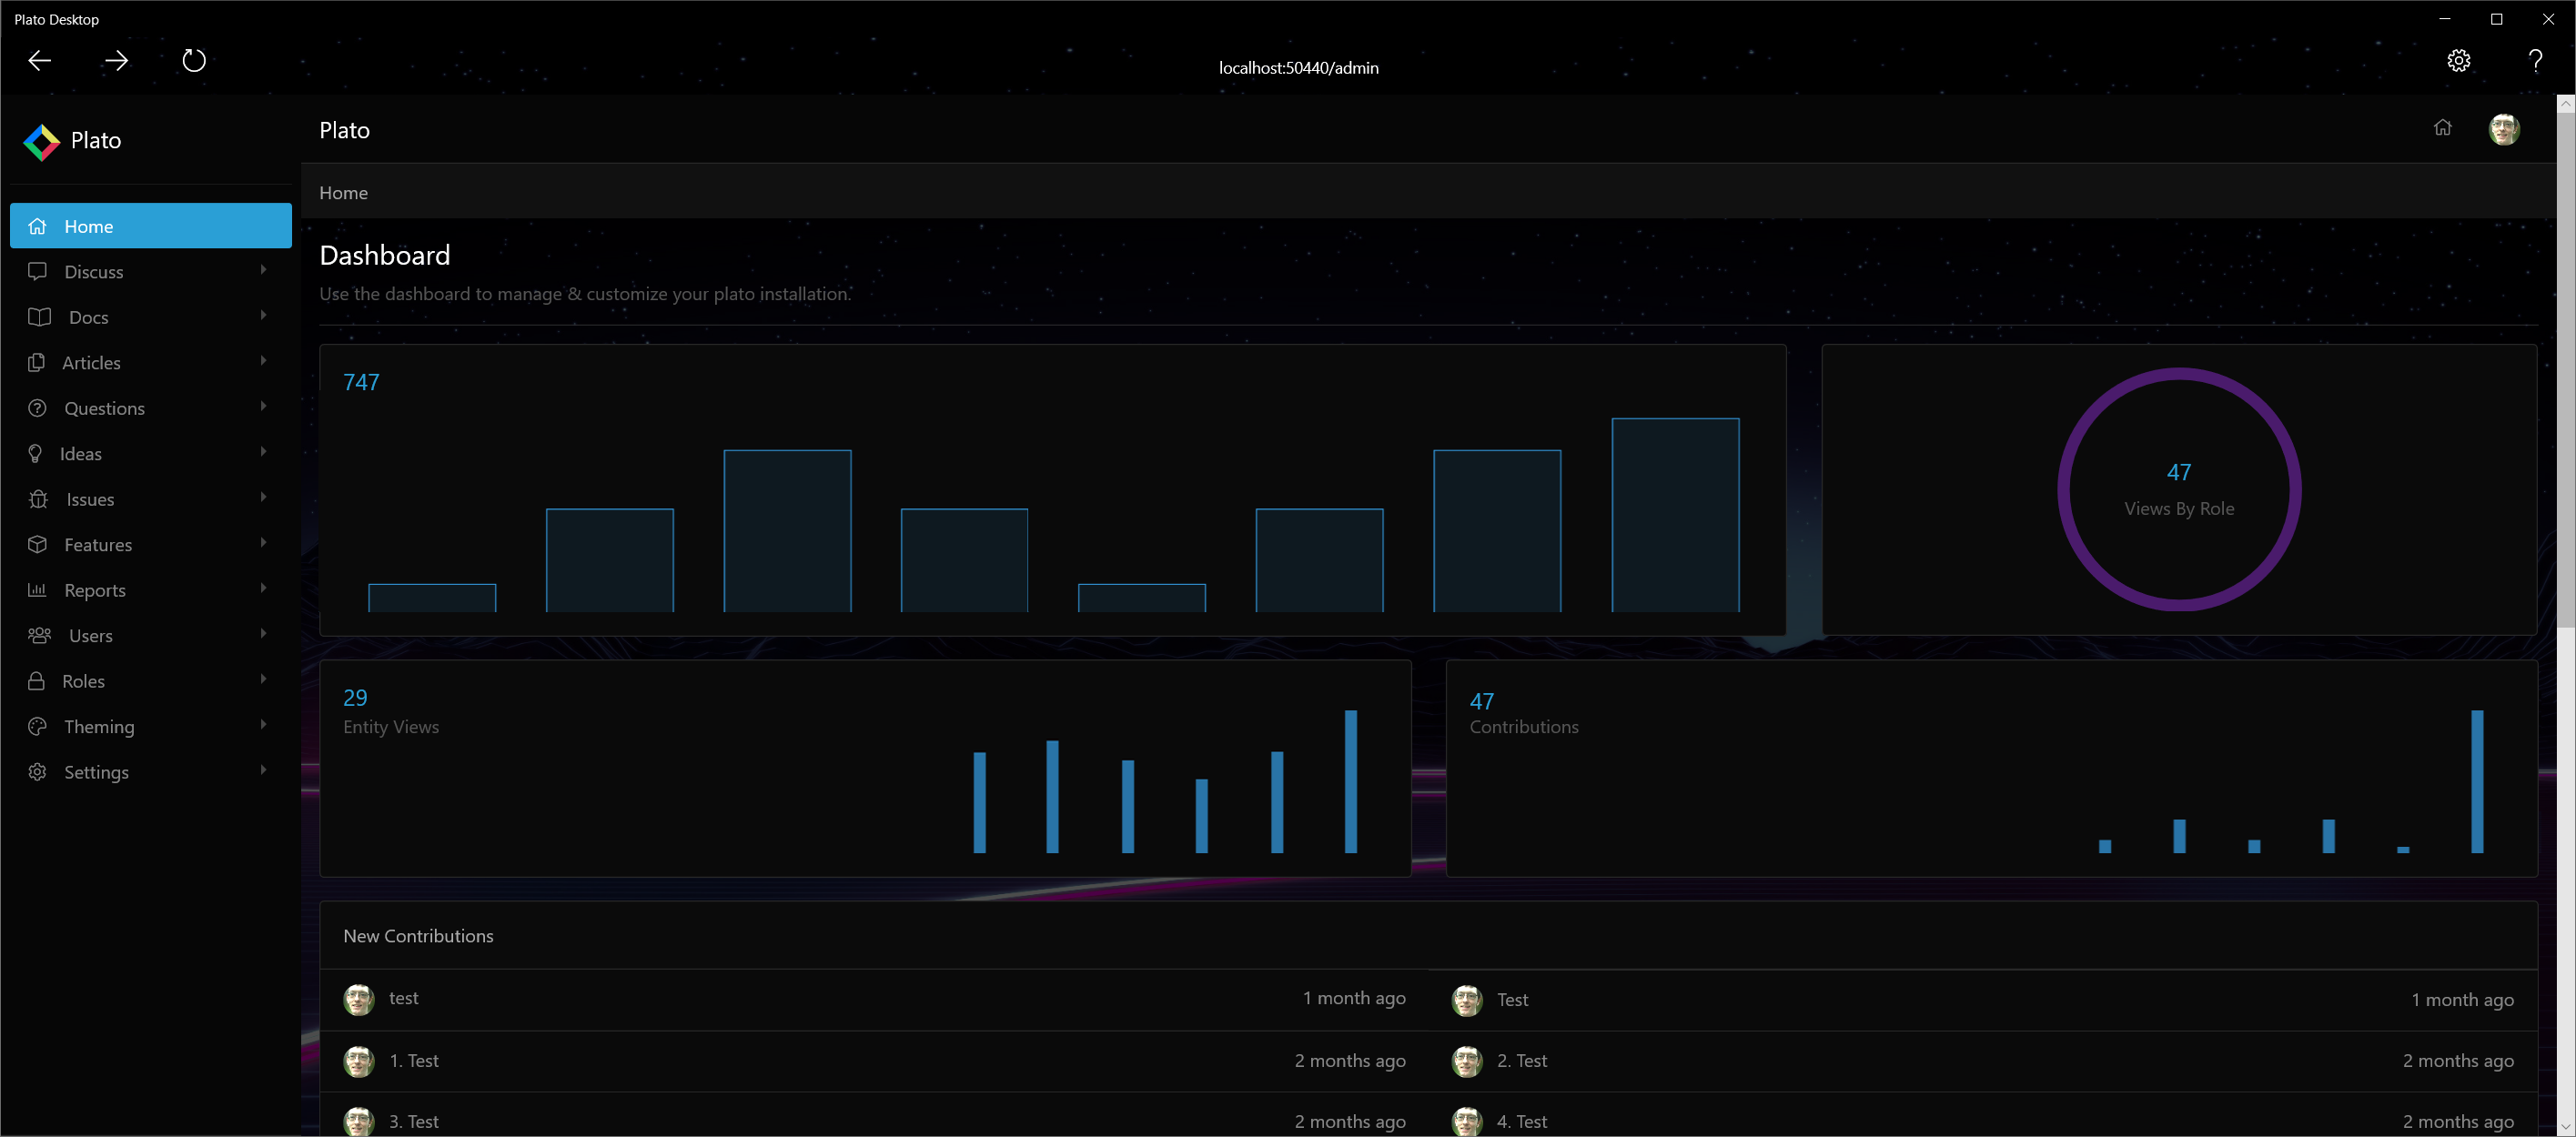 Plato Desktop Admin Dashboard